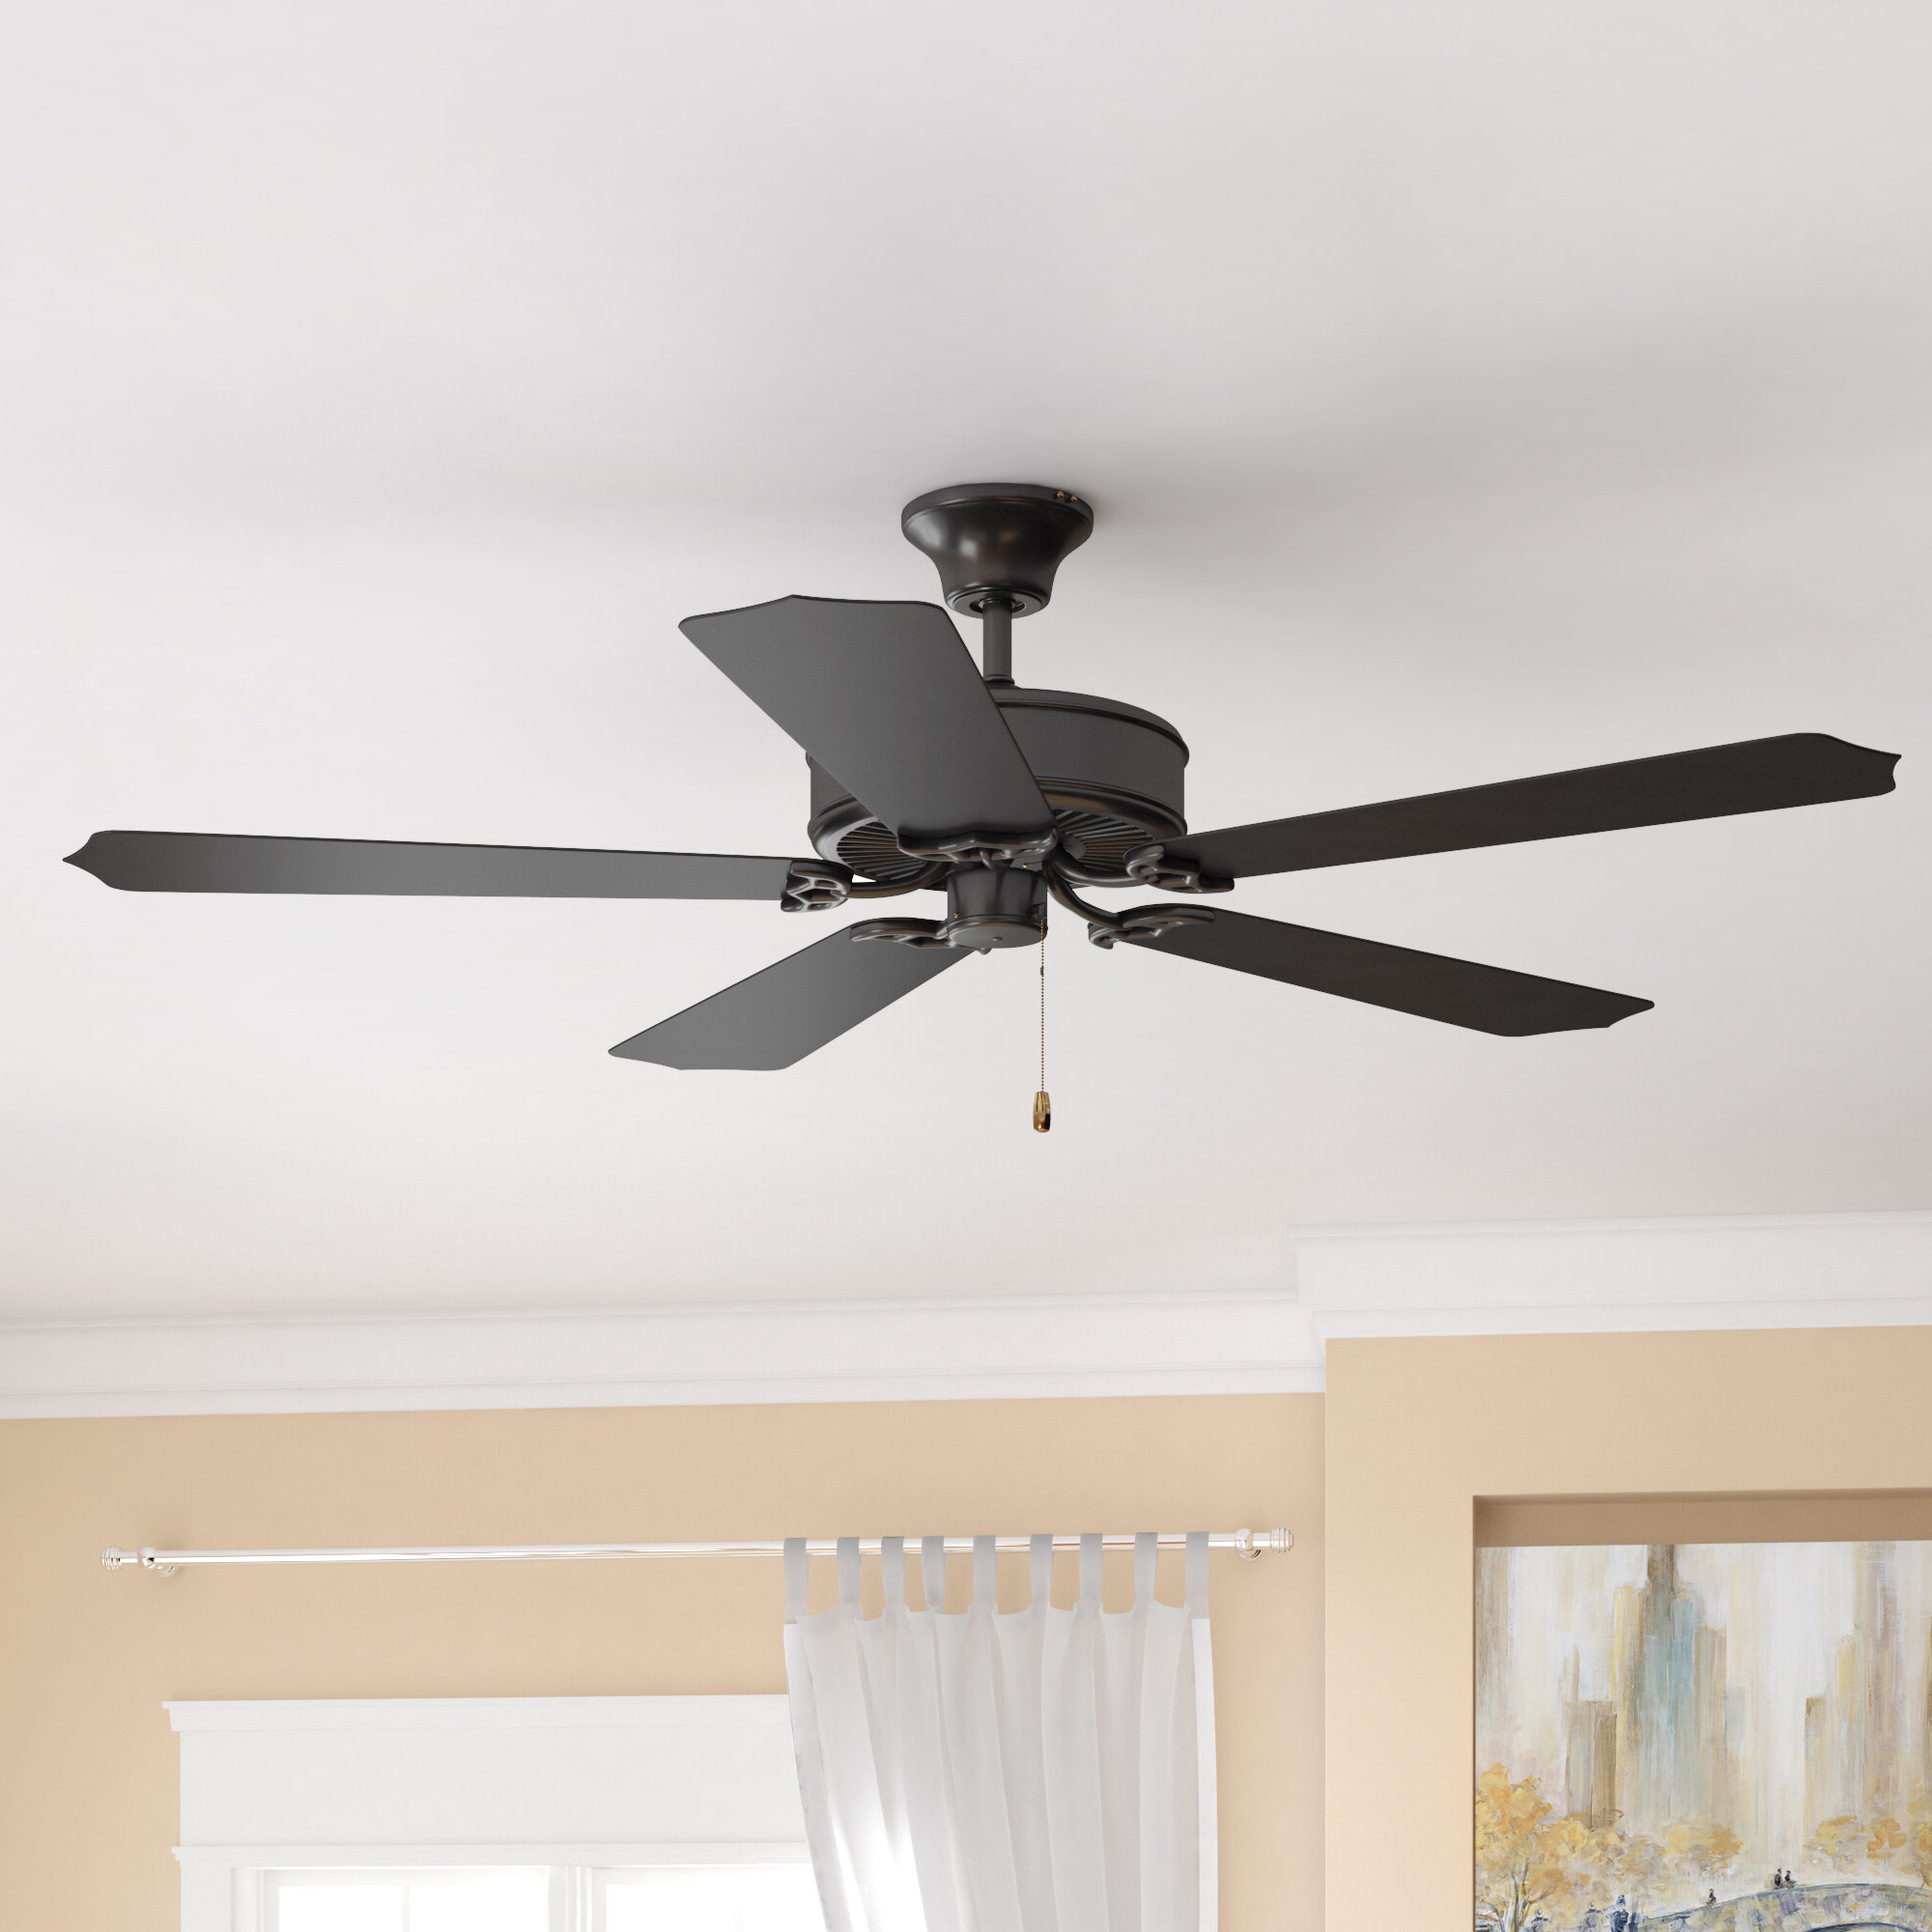 Wayfair Intended For 2020 Rainman 5 Blade Outdoor Ceiling Fans (View 8 of 20)